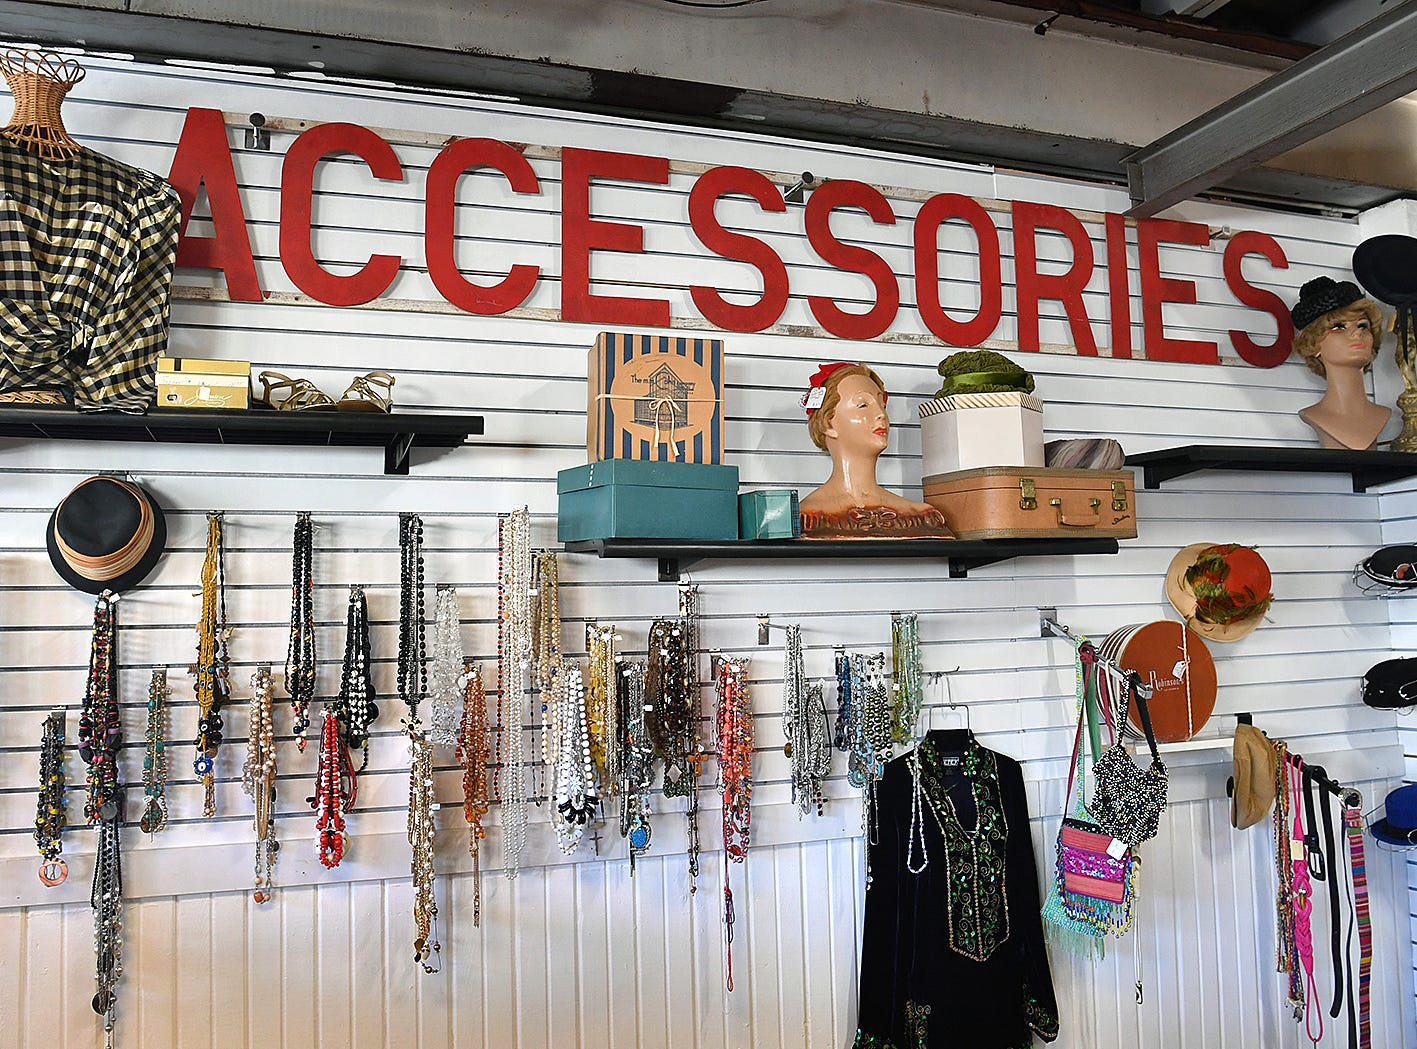 The Fashion Garage offers vintage, retro and contemporary clothing, shoes, jewelry and accessories and recently opened in the former Gragg Motor Company at 12th Street and Lamar.